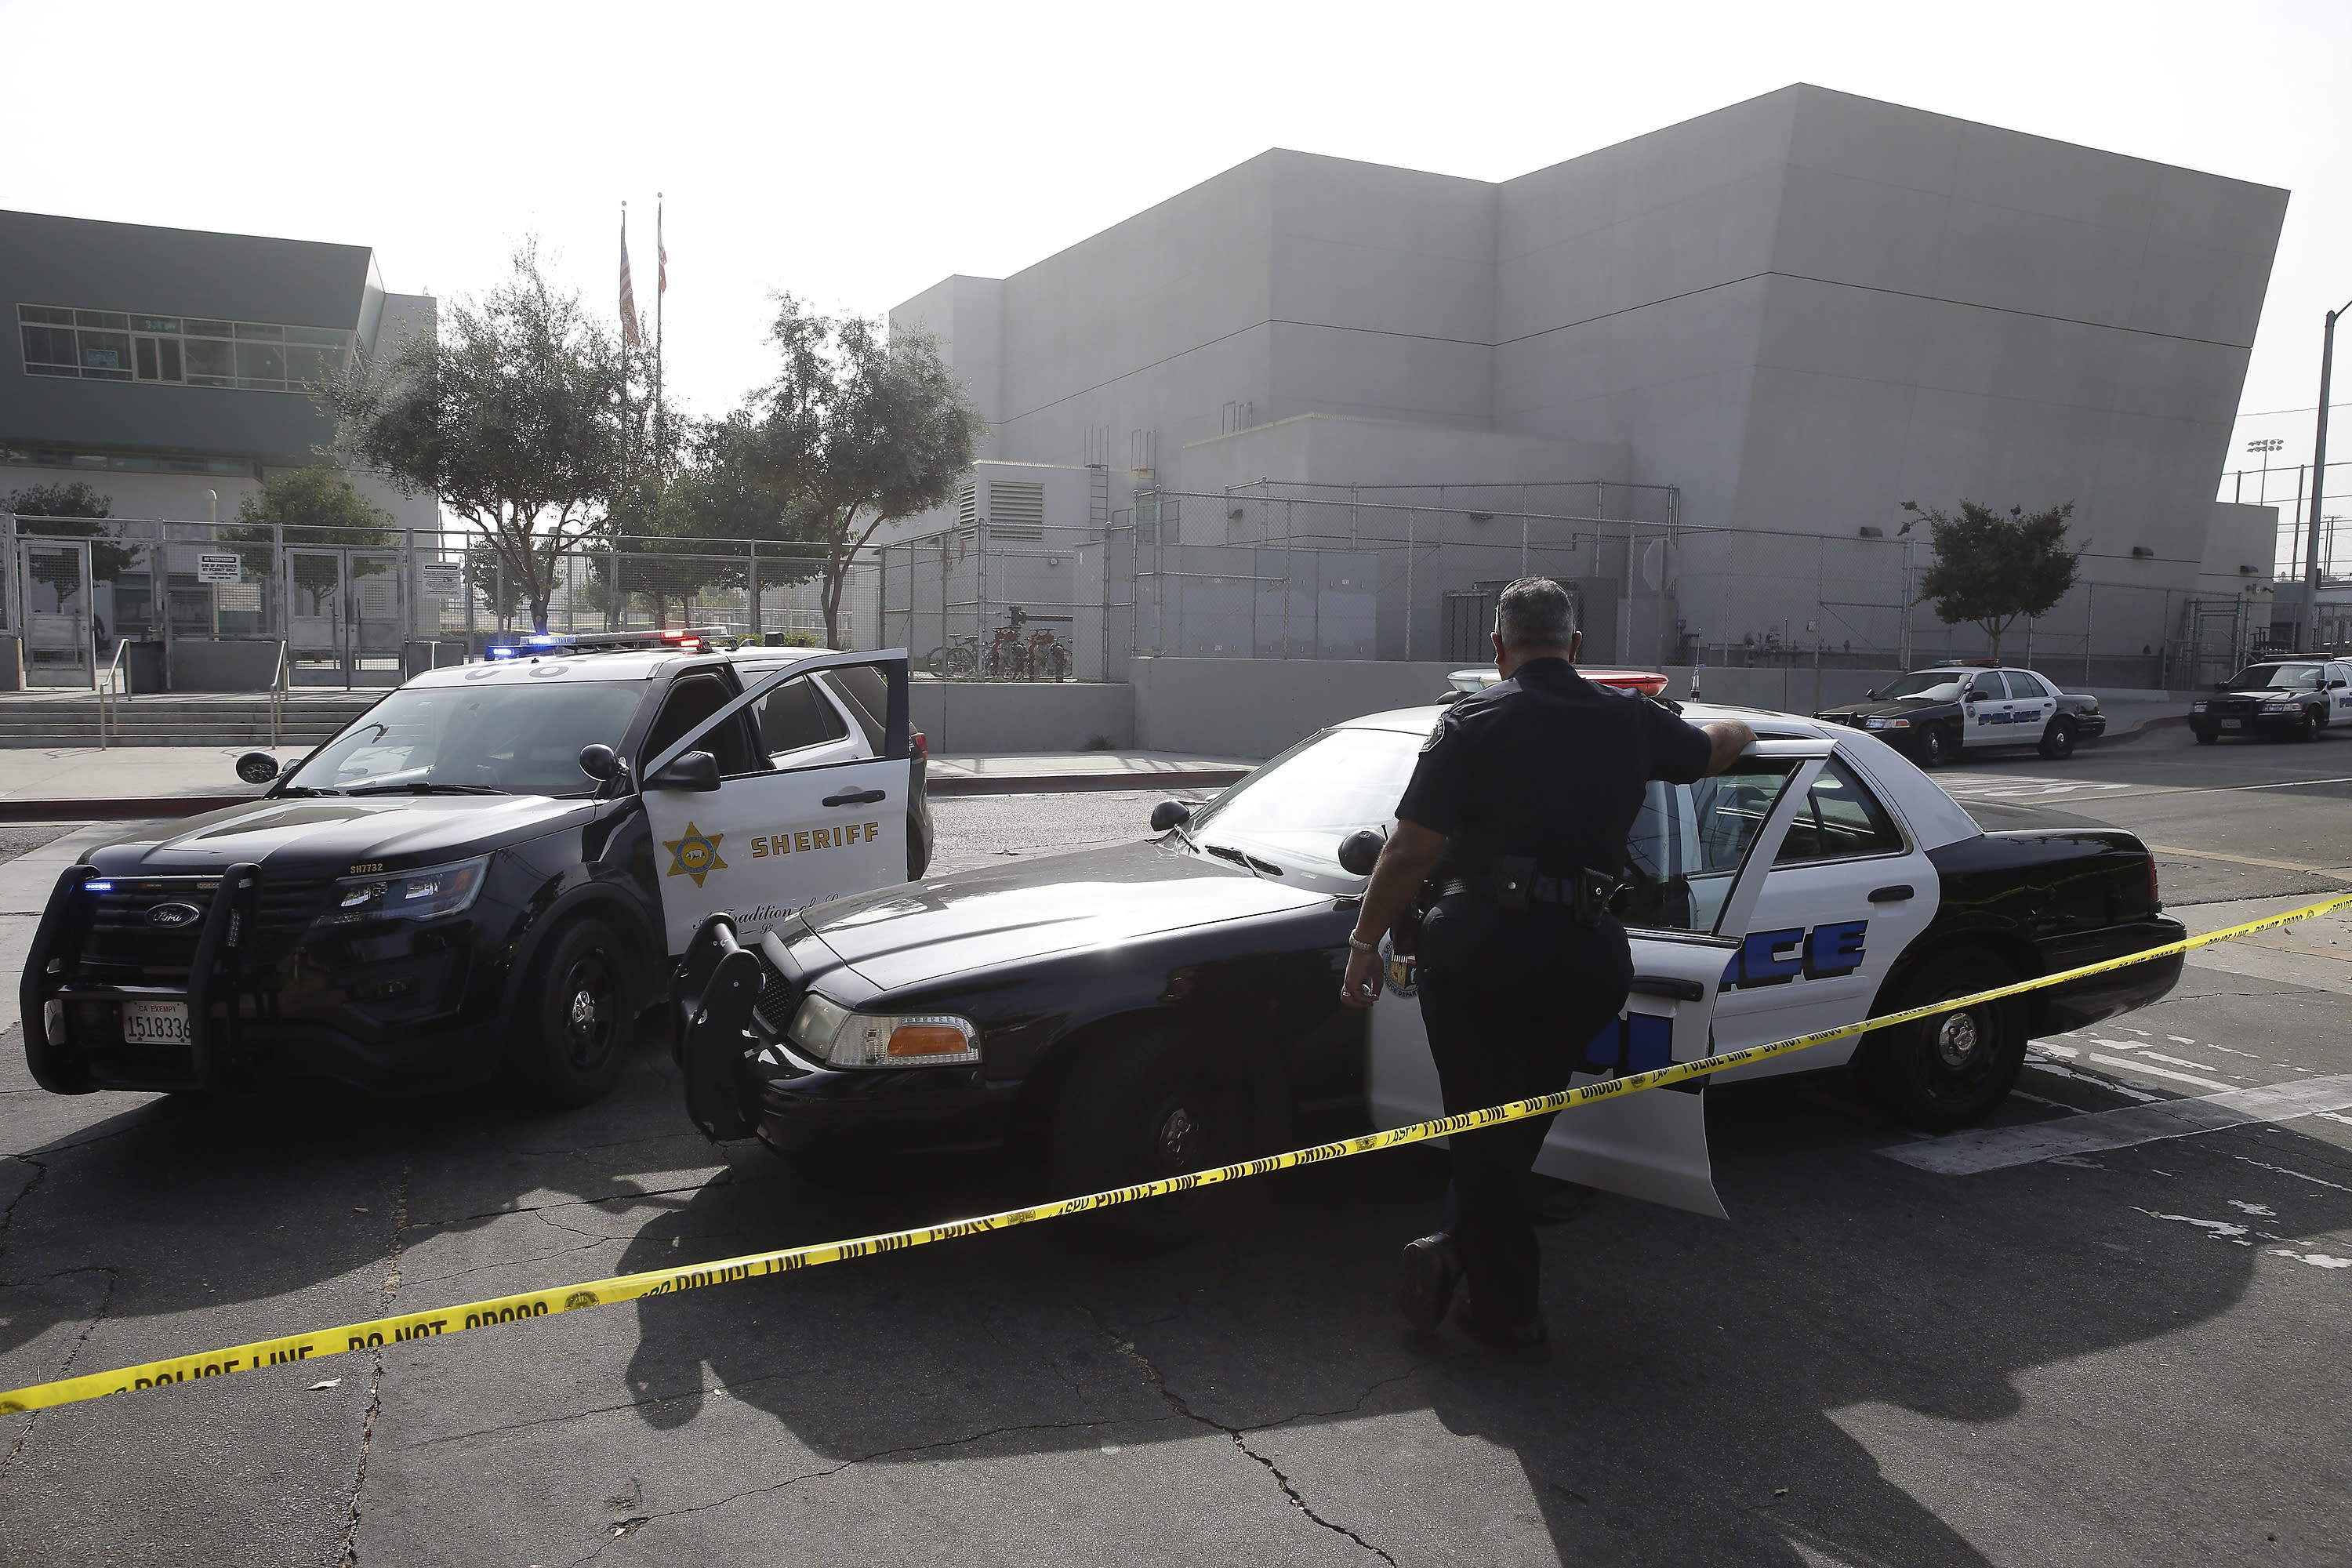 FILE - Los Angeles Sheriffs officers and Los Angeles Unified School District police officers guard the campus of Esteban Torres High School in unincorporated East Los Angeles, after a sheriff's deputy fatally shot a man wielding a sword, after he had climbed over the fence to get onto the school grounds Wednesday, Nov. 13, 2019. On Tuesday, June 30, 2020, the Los Angeles Unified School District voted an immediate 35% cut to the budget of its school police. (AP Photo/Damian Dovarganes, File)